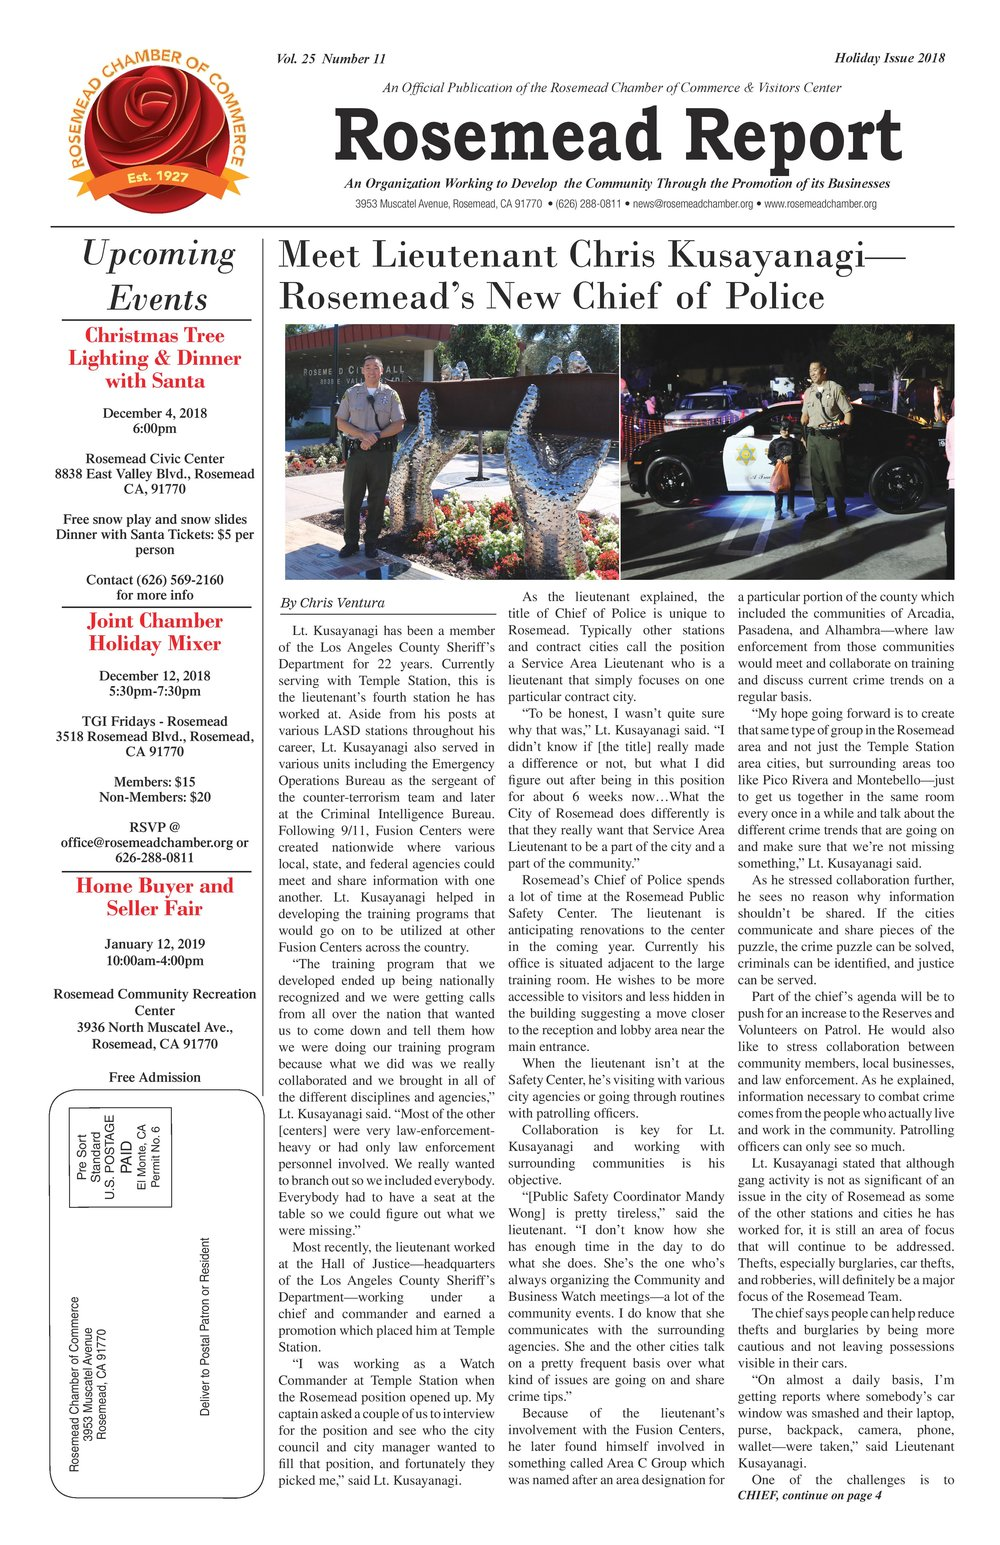 Holiday issue 2018 - Rosemead Report